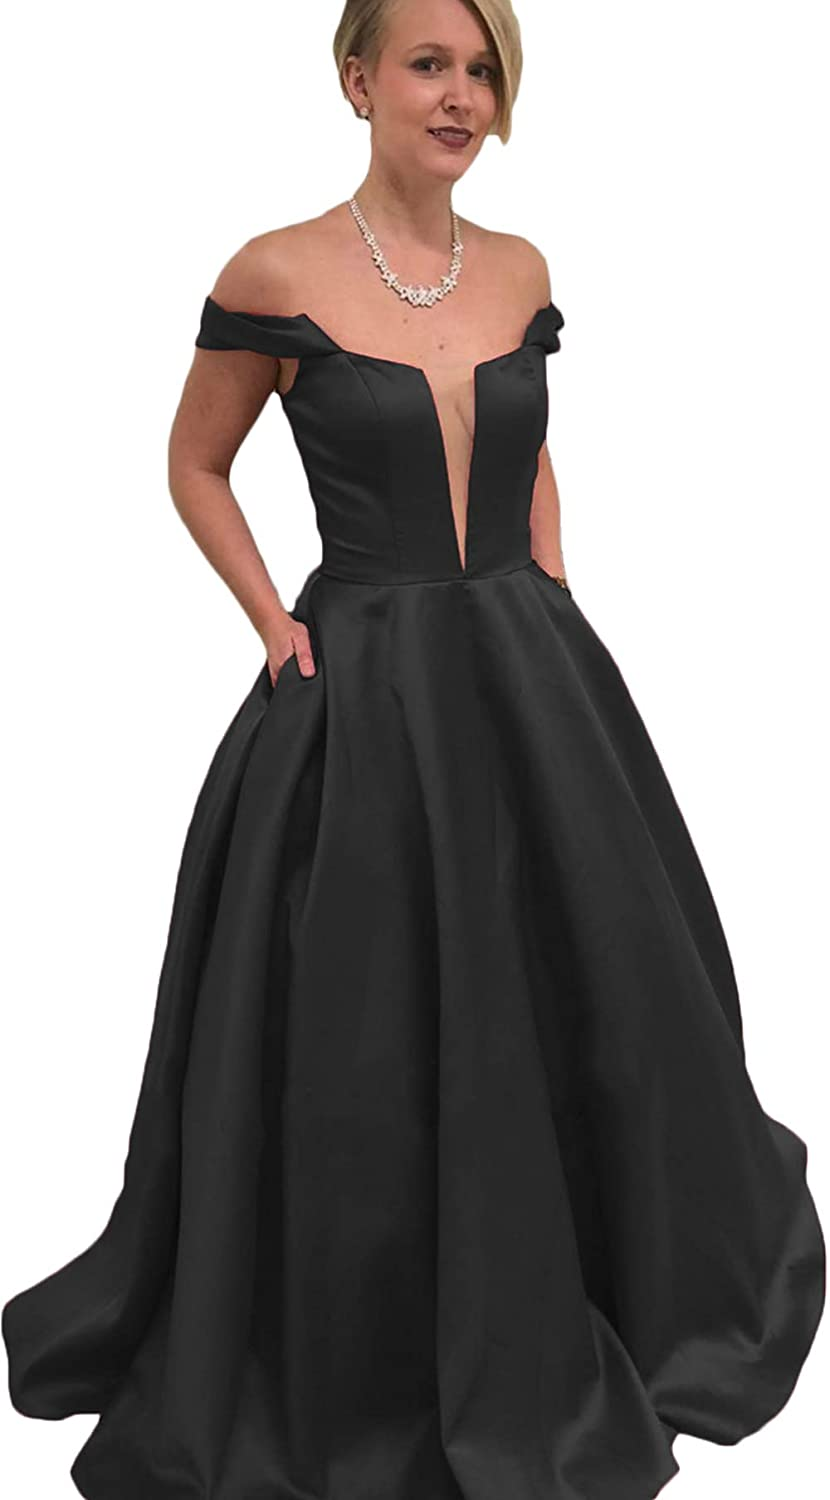 Black Rmaytiked Womens Off The Shoulder Ruffle Prom Dresses Long 2019 Satin A Line Formal Evening Ball Gowns with Pockets